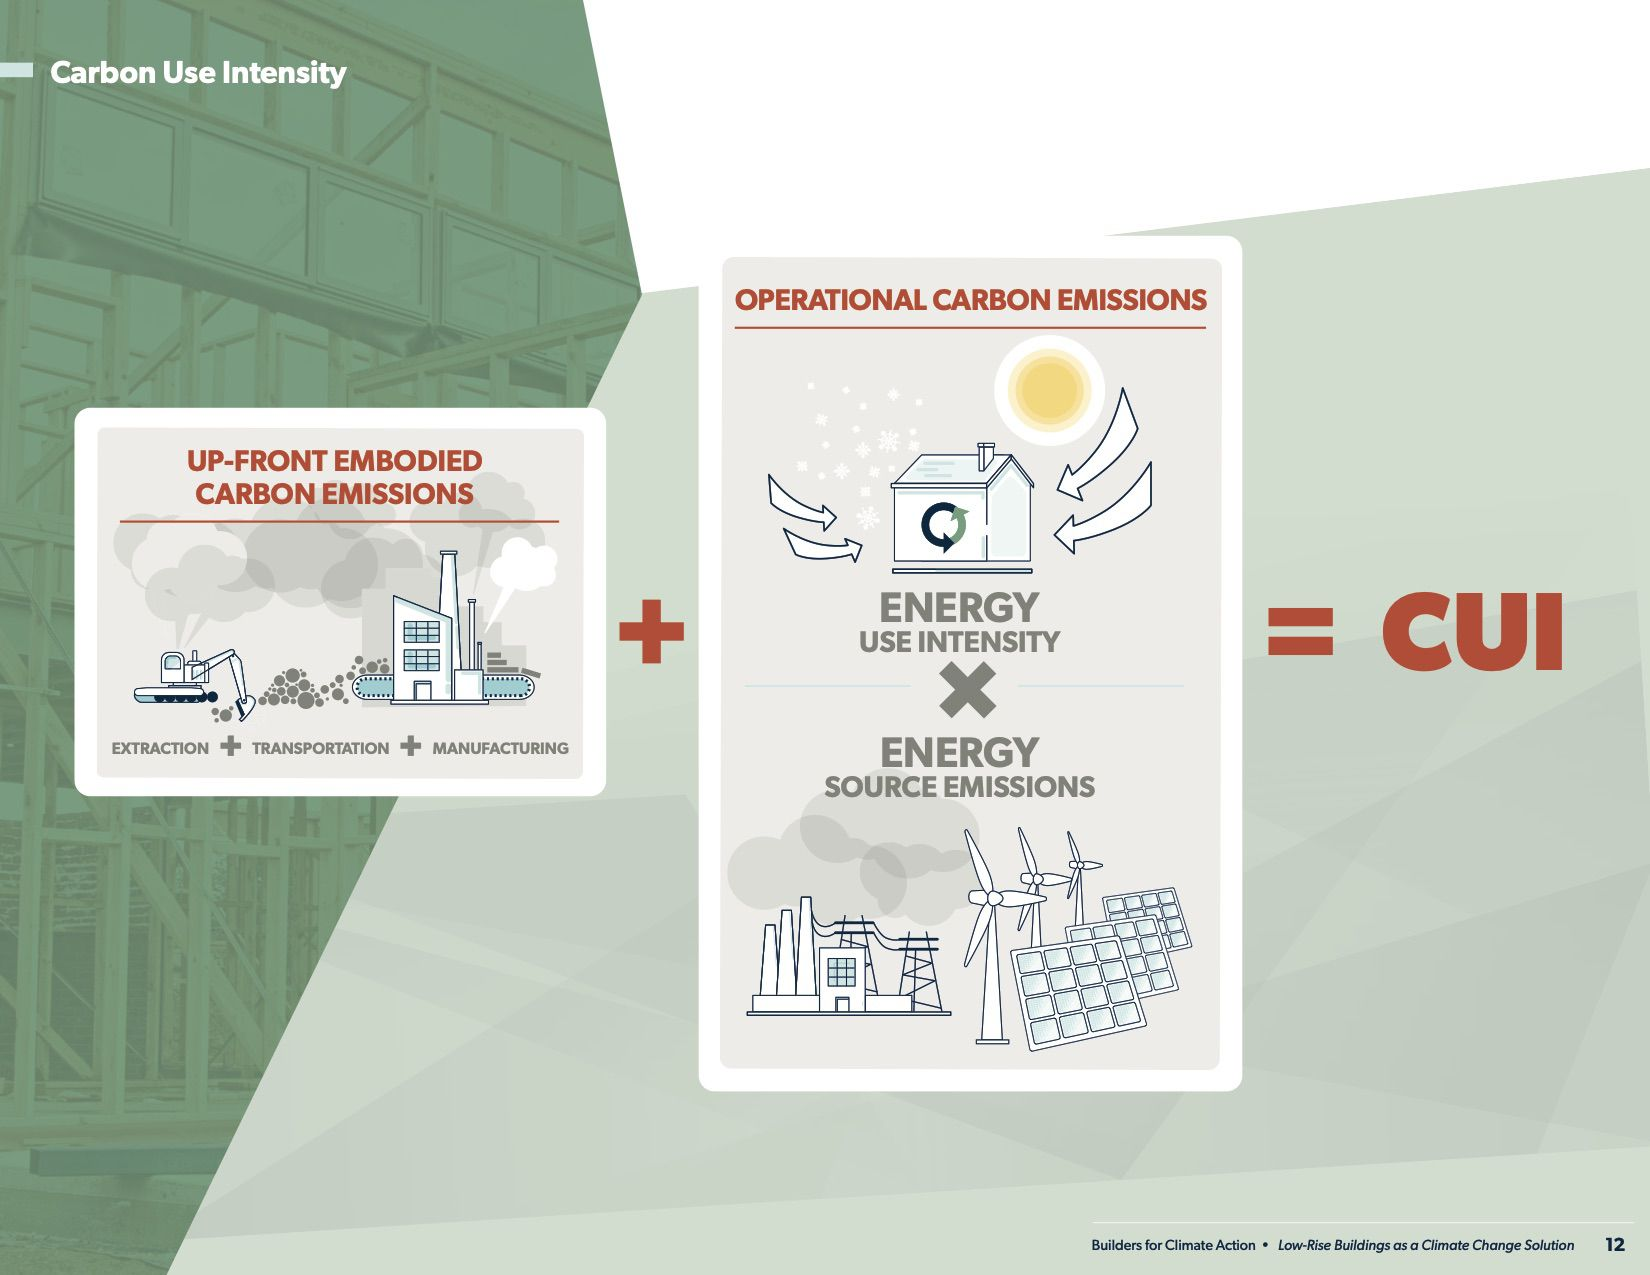 Carbon use intensity